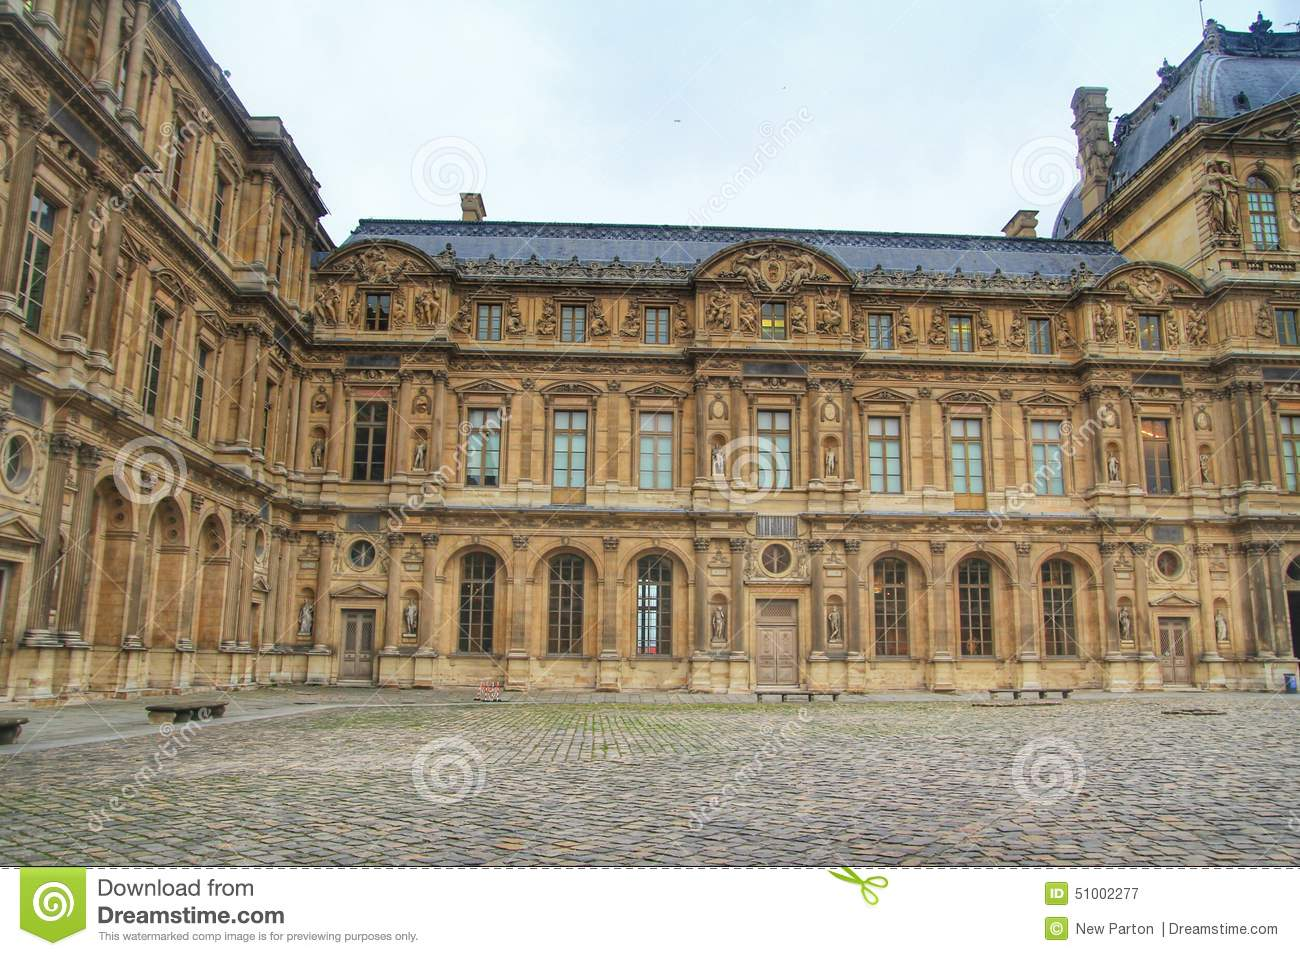 The second court of the louvre museum louvre paris france stock photo im - Construction of the louvre ...